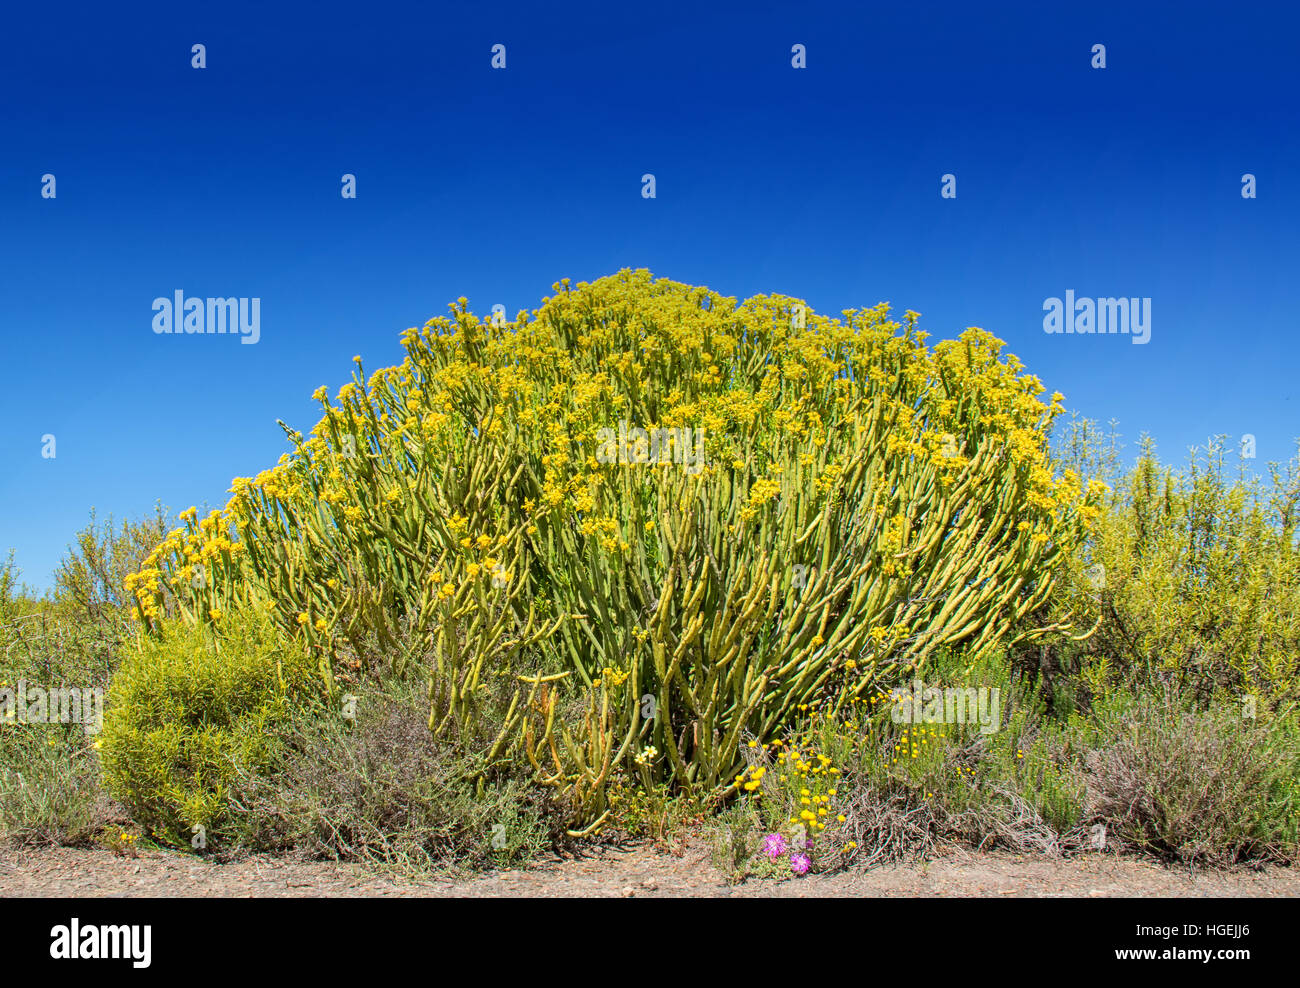 Euphorbia mauritanica bush in the Northern Cape, South Africa Stock Photo